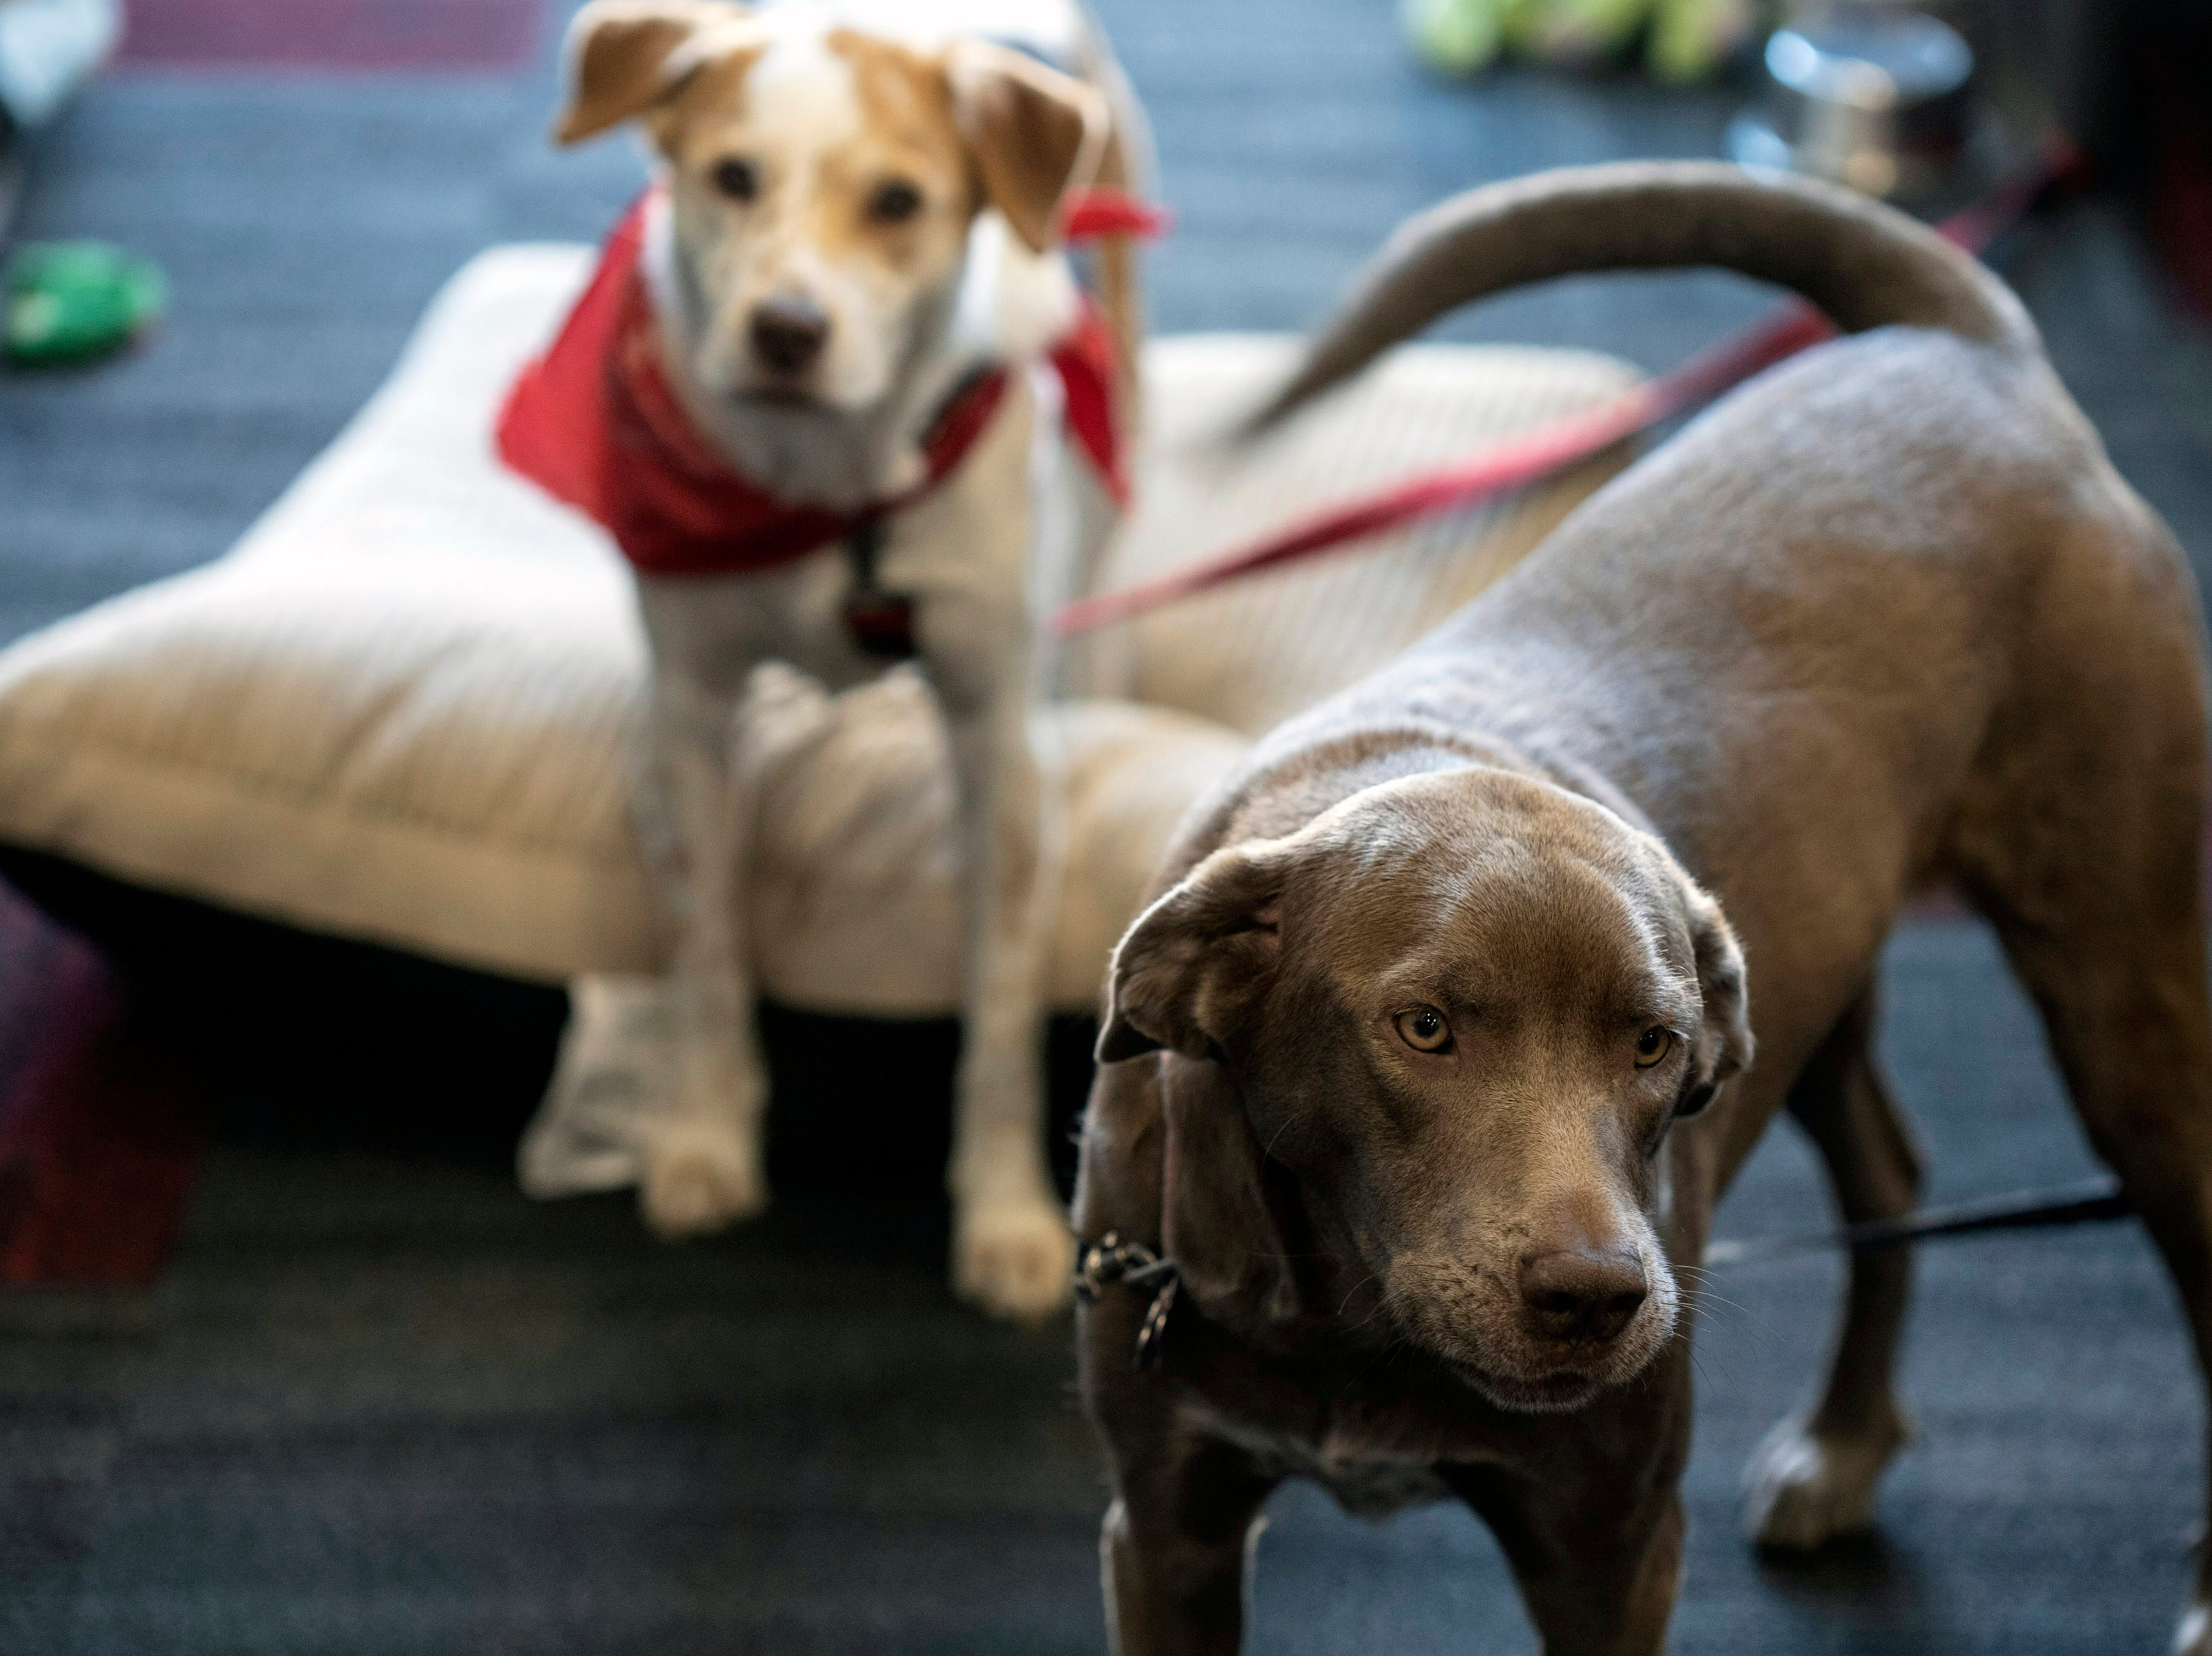 A pair of dogs named Echo and Maize hang out together under and around the desks at PetFirst in  Jeffersonville. Jan. 10, 2019